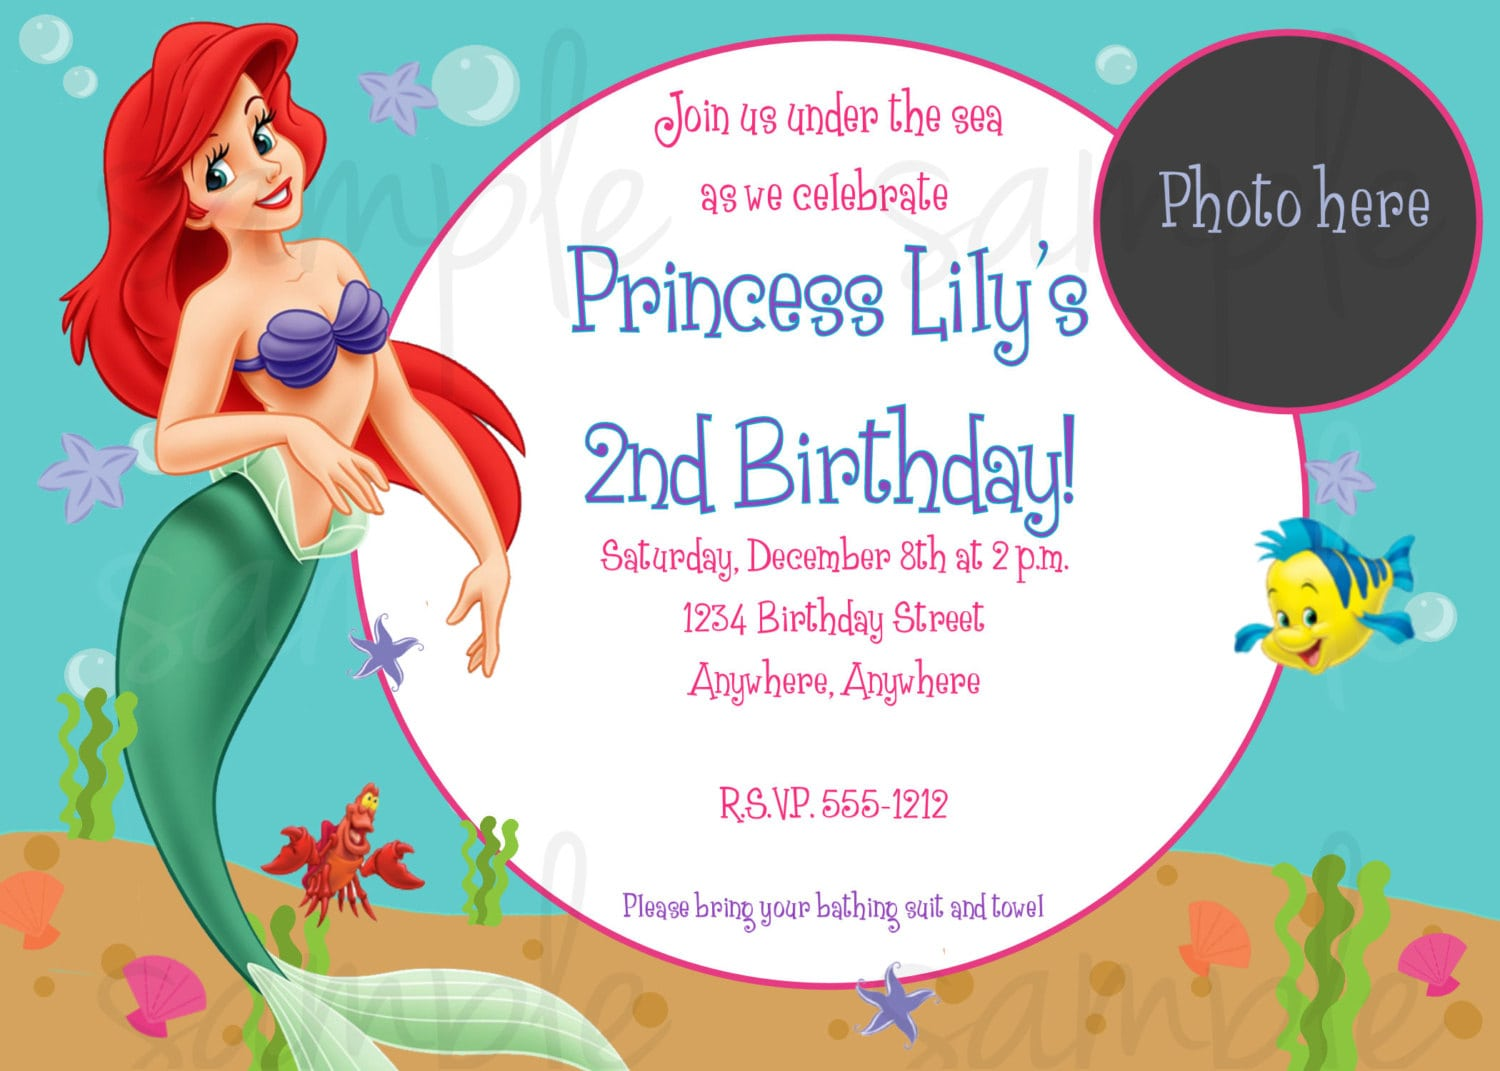 Little Mermaid Birthday Invite Template - Little mermaid birthday invitation template